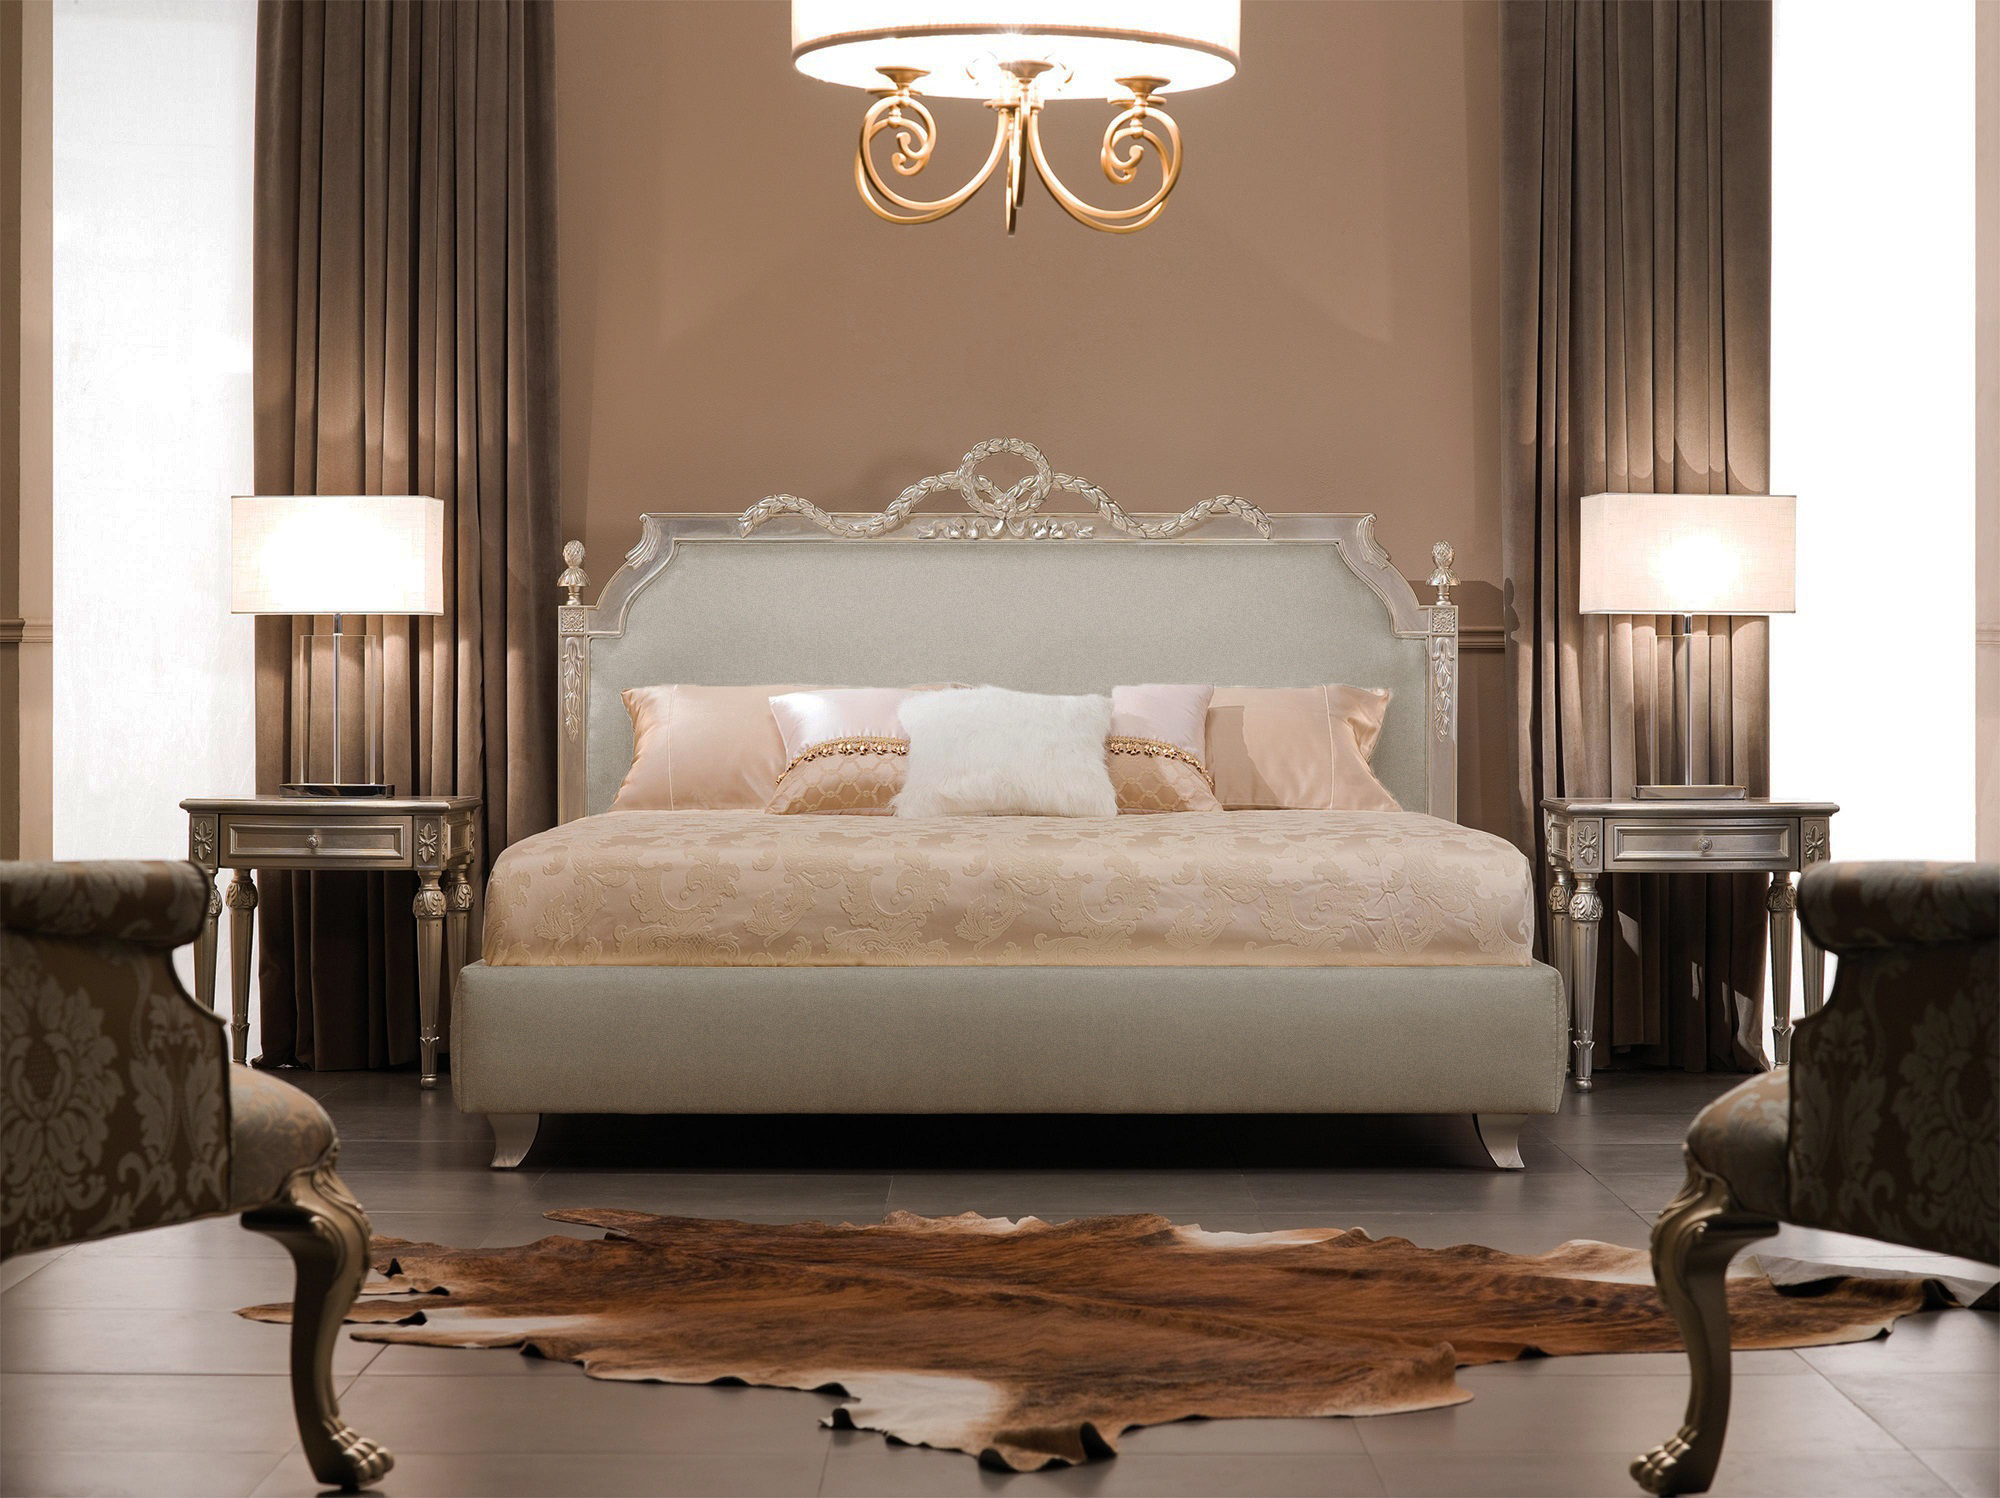 Luxury Bedroom Furniture Designer Bed Featuring Baroque Bedroom Set